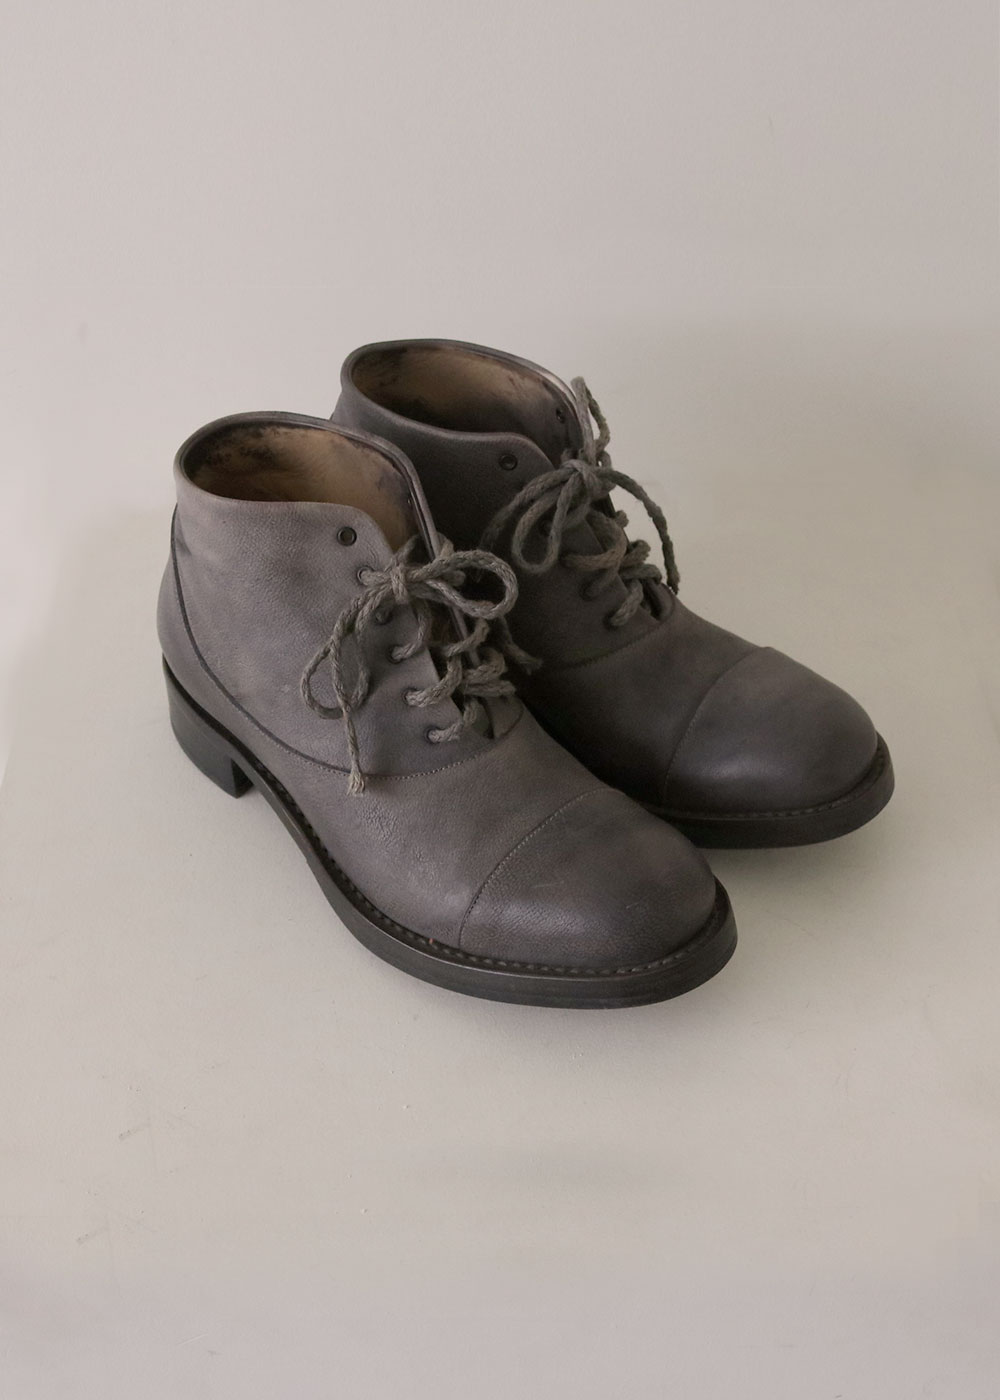 6 HOLE BOOT GOODYEAR